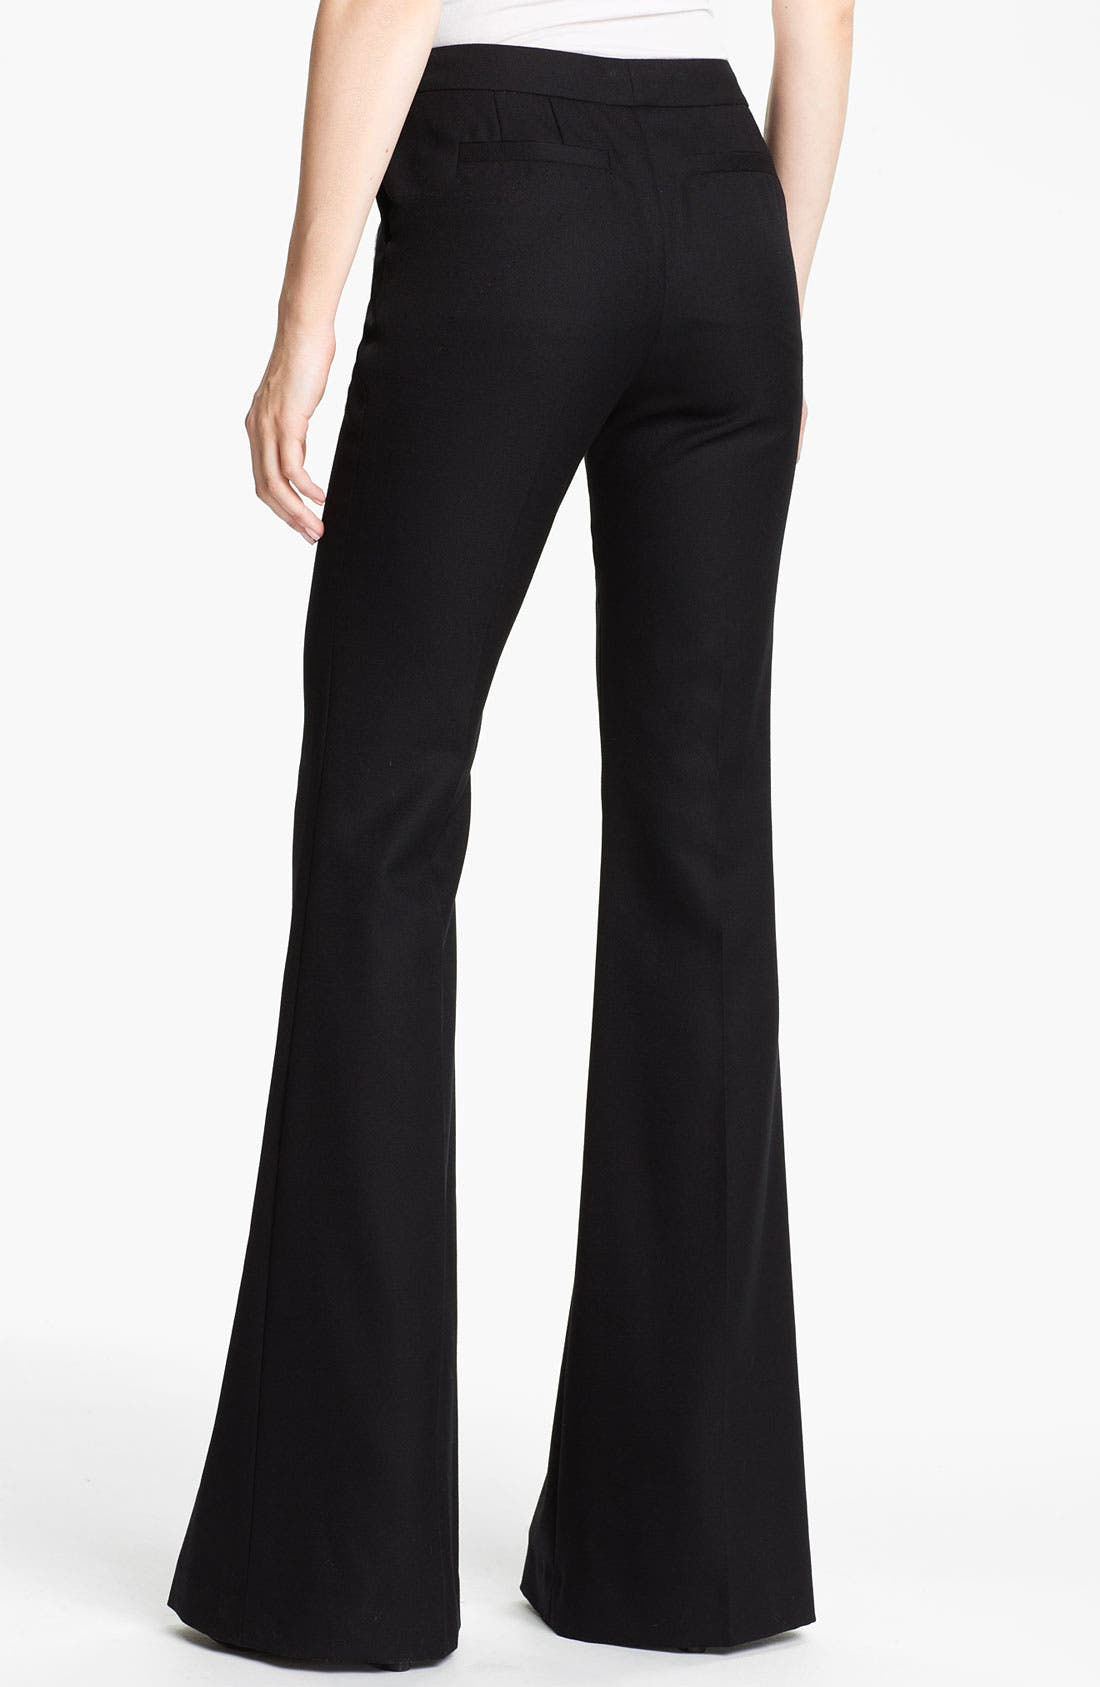 Alternate Image 2  - Rachel Zoe 'Rachel' Flare Leg Pants (Long)